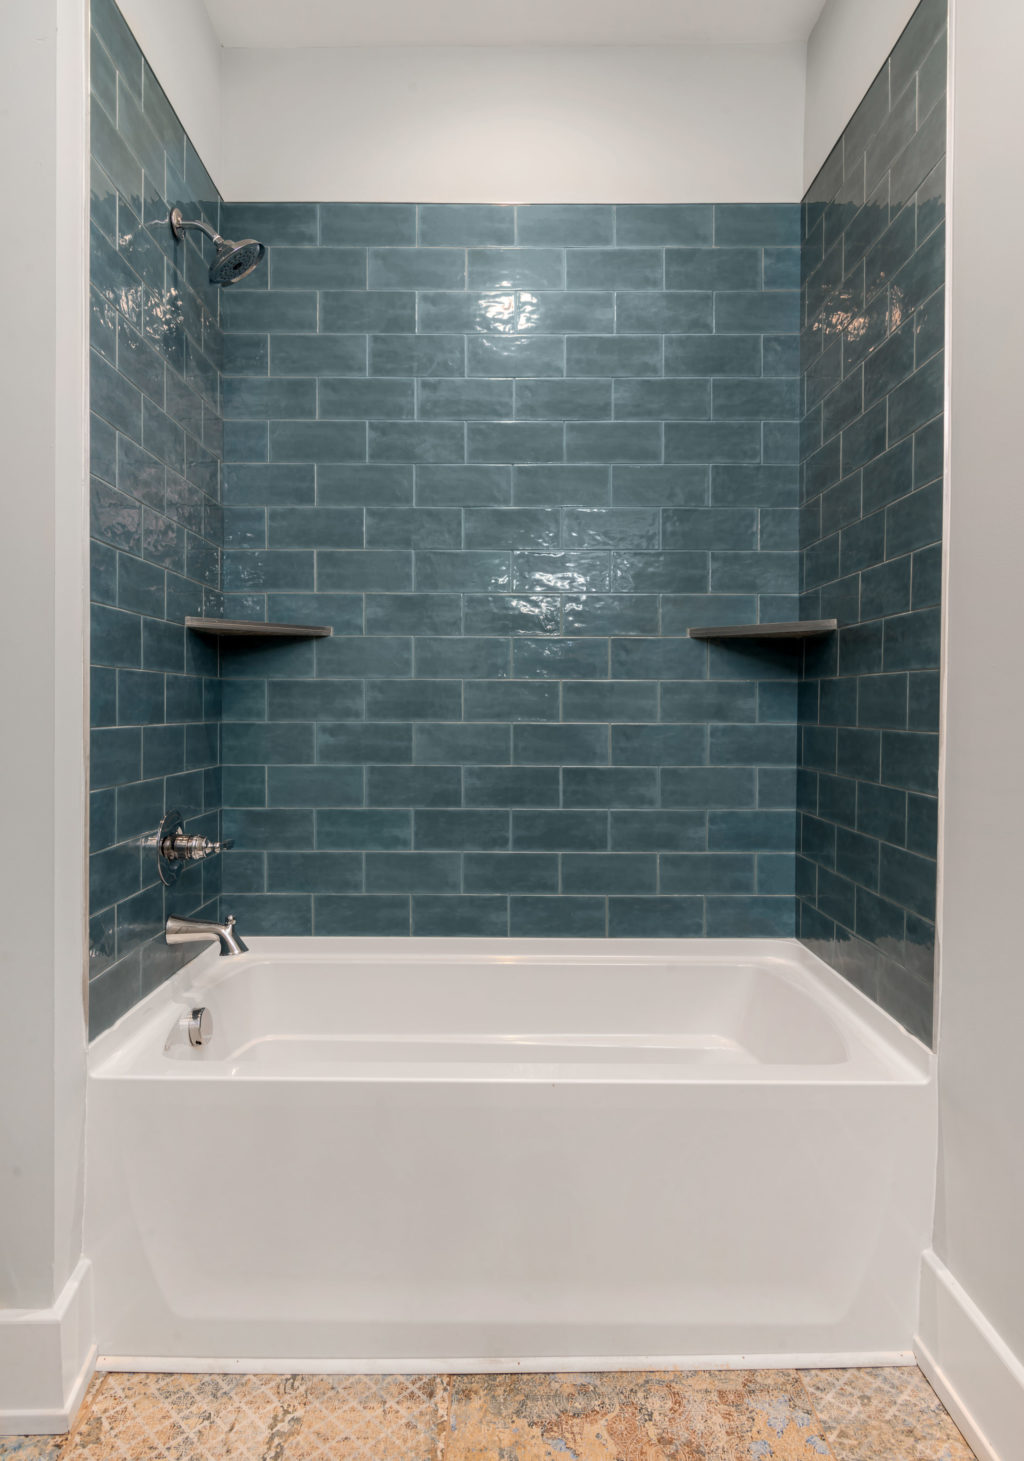 Image of bathroom by MT Building Group in Murfreesboro